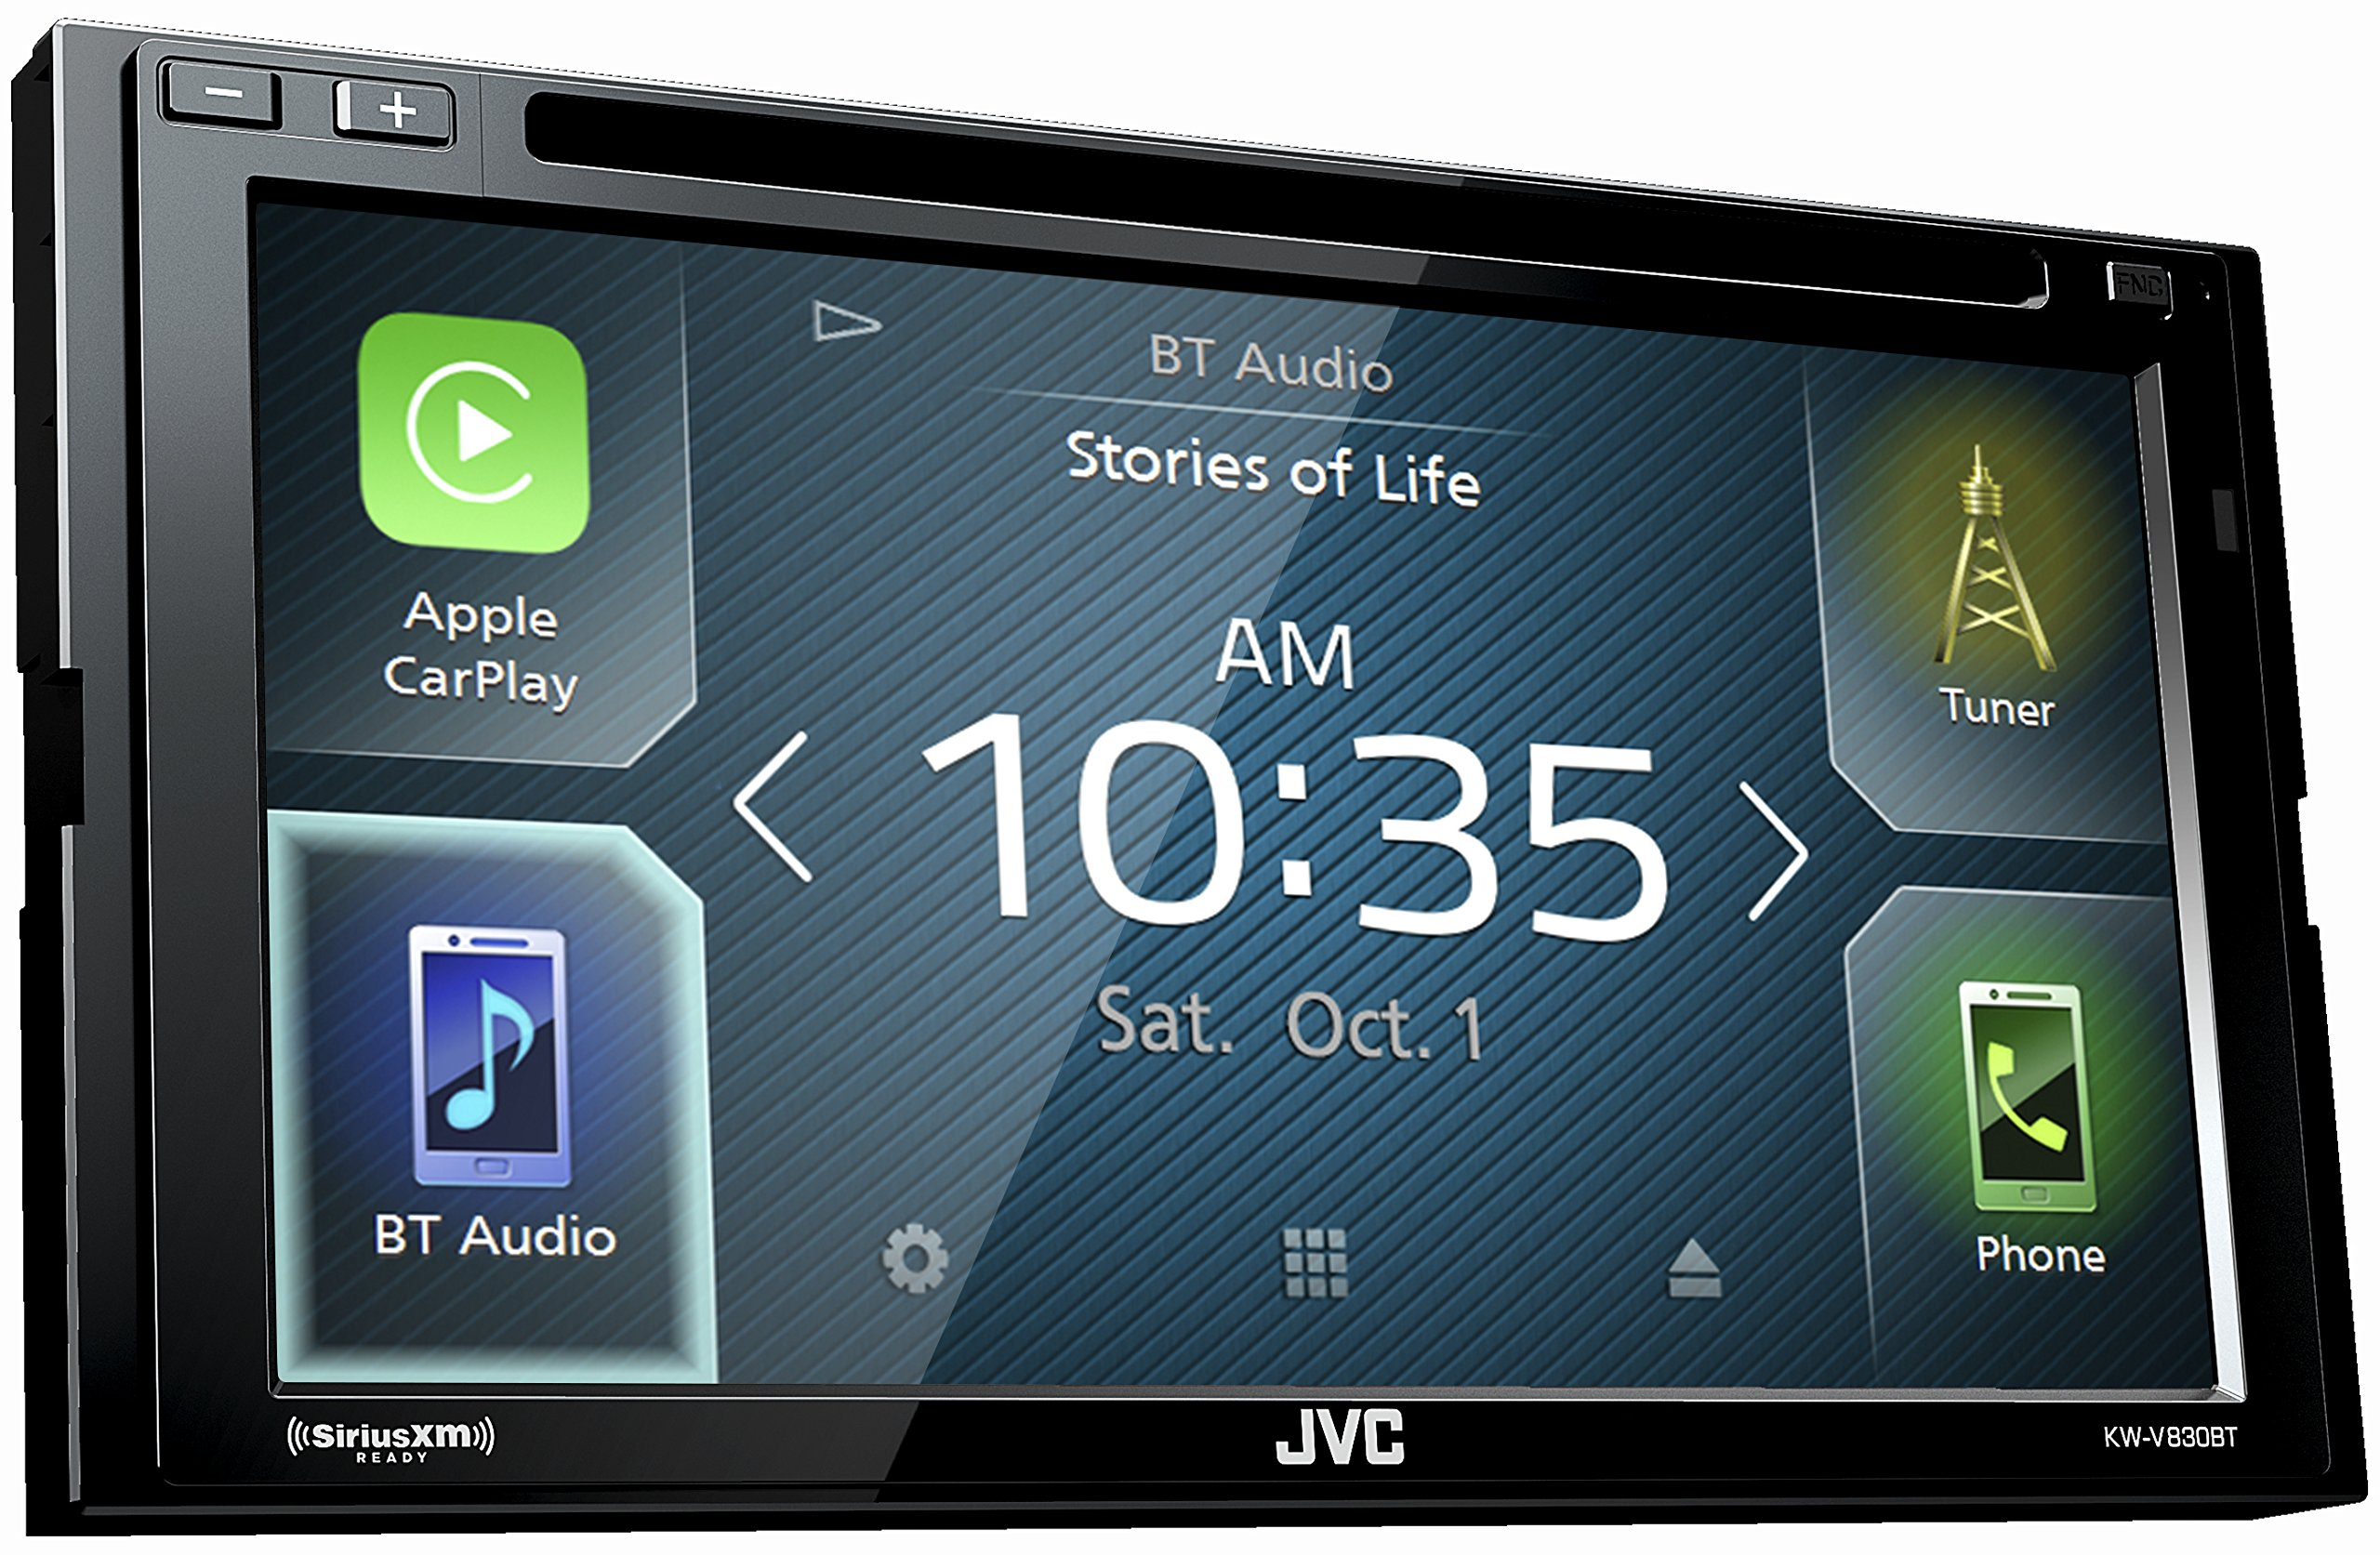 JVC KW-V830BT Double DIN Bluetooth In-Dash DVD/CD/AM/FM Car Stereo Receiver w/ 6.8'' Touchscreen LCD Display, Apple Car Play, Android Auto